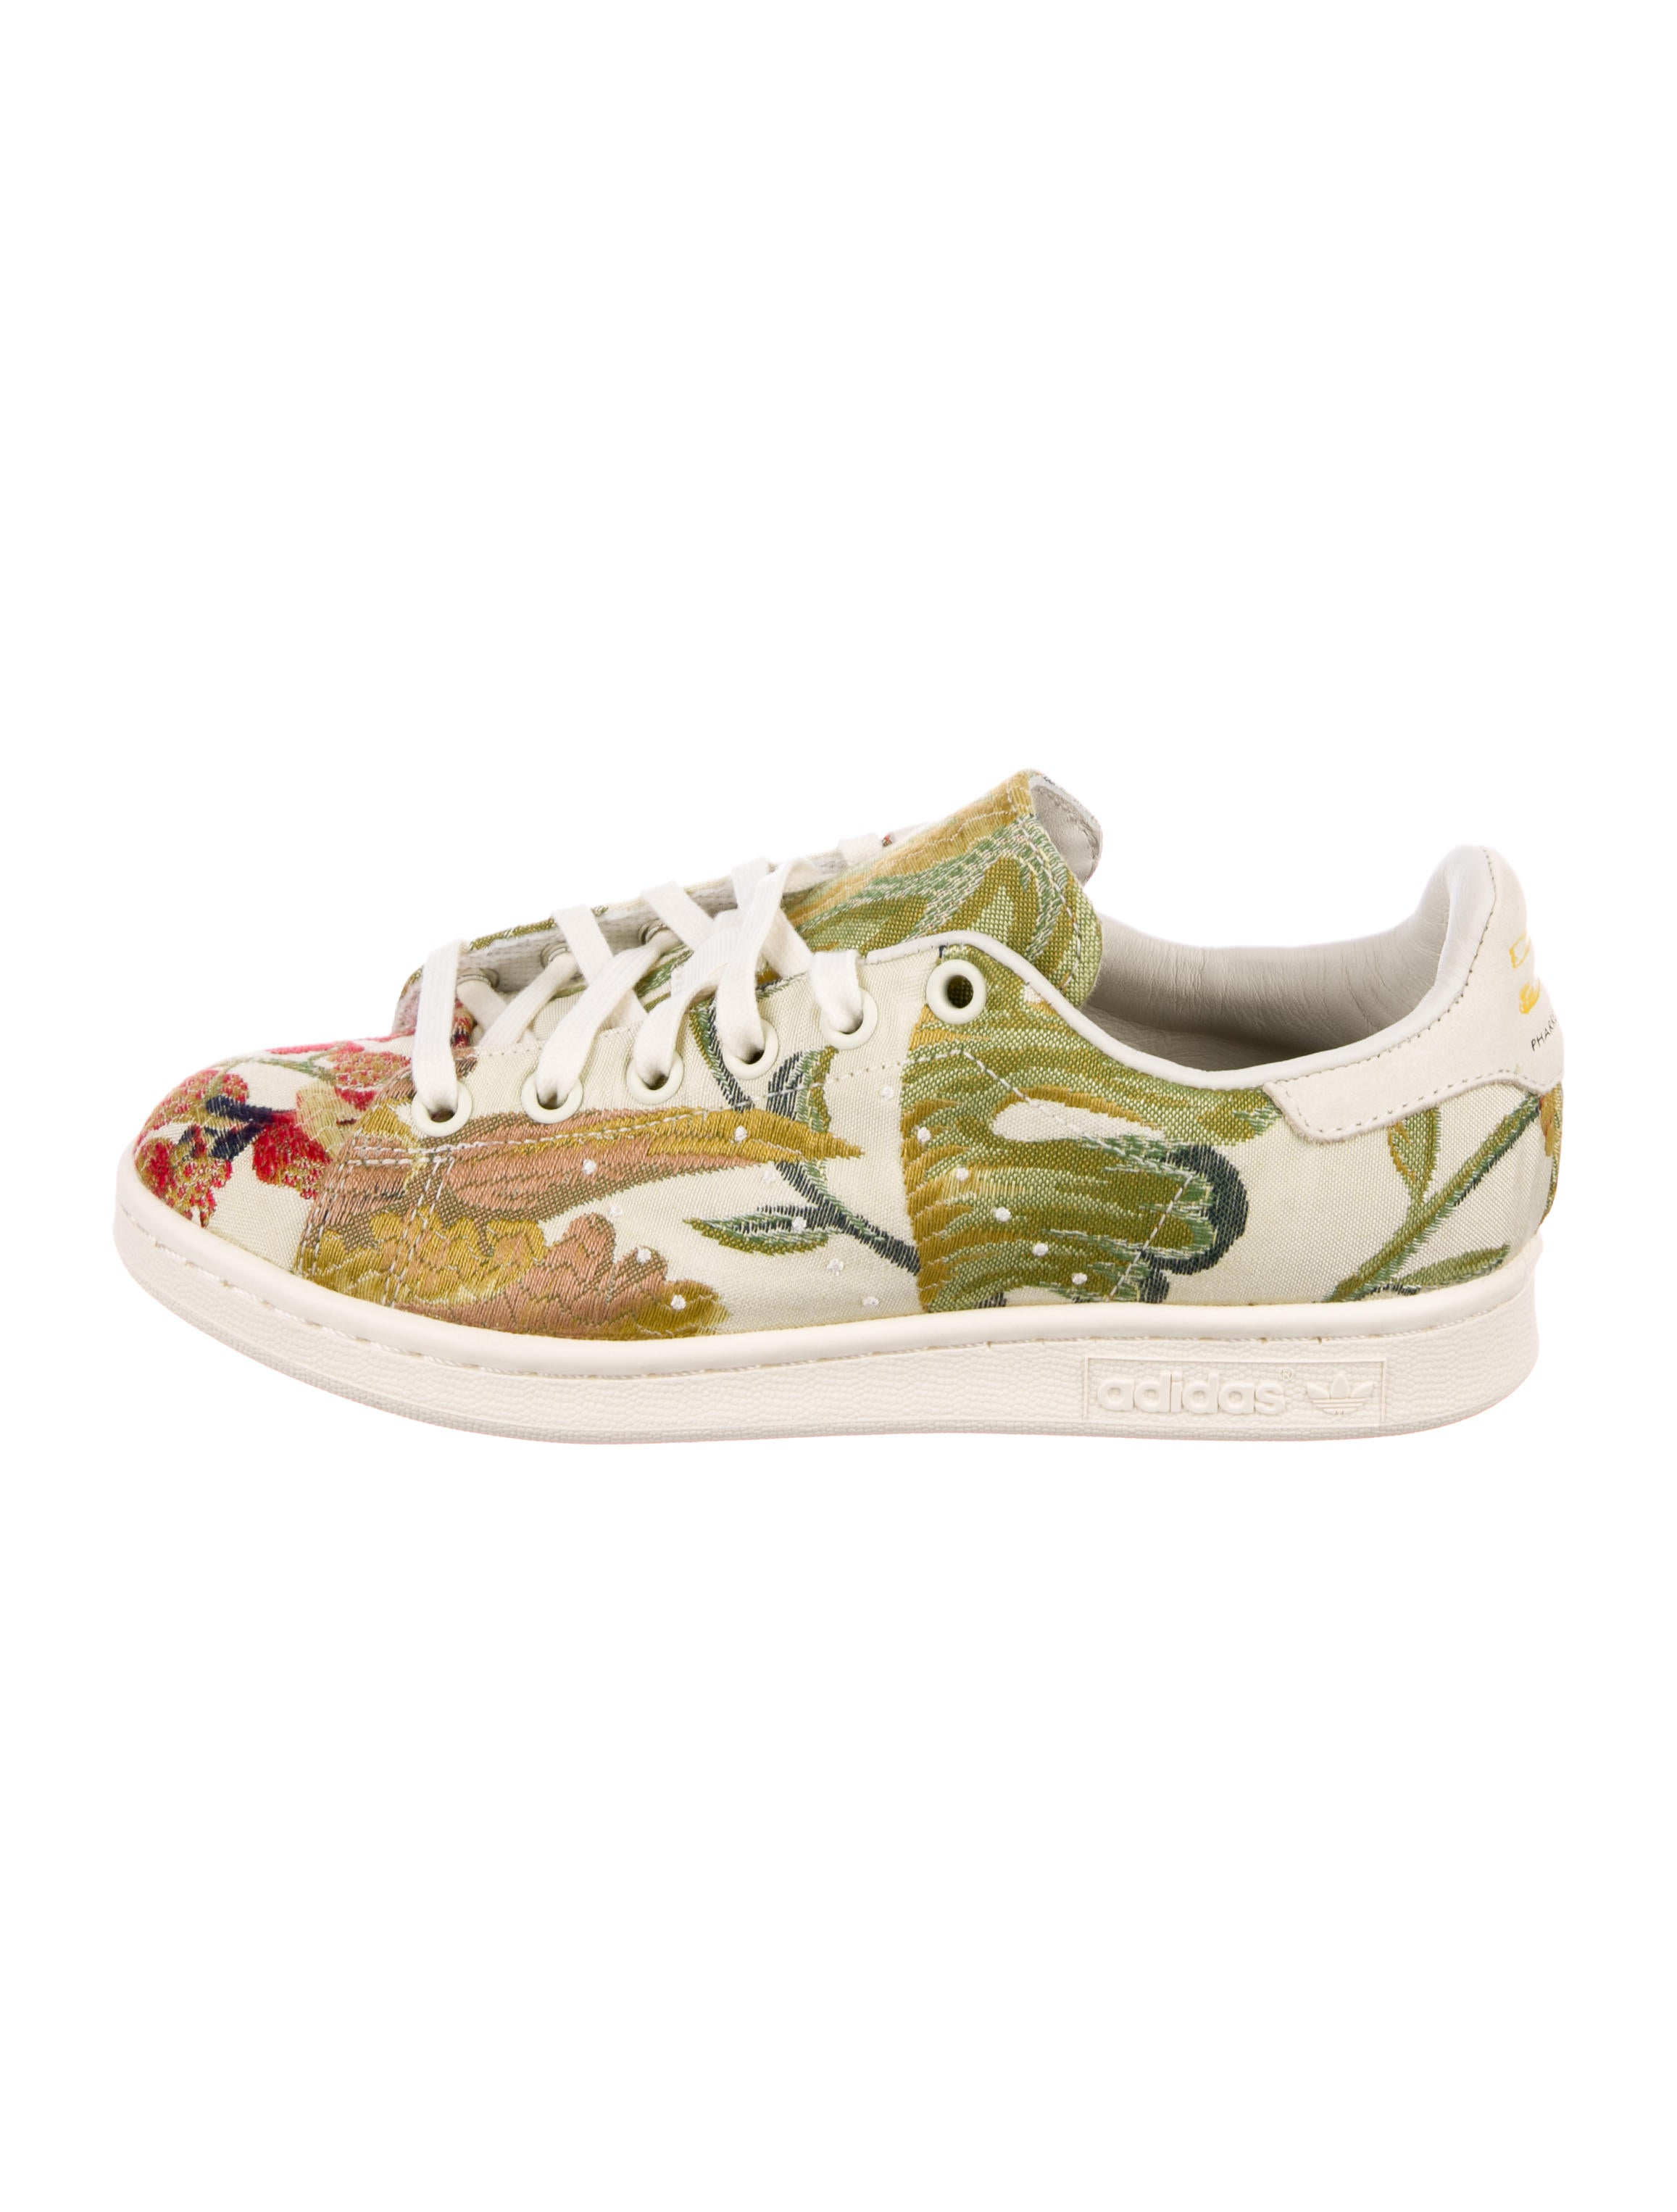 release dates cheap online fake online Adidas Stan Smith Brocade Sneakers w/ Tags outlet pay with paypal 0lipB